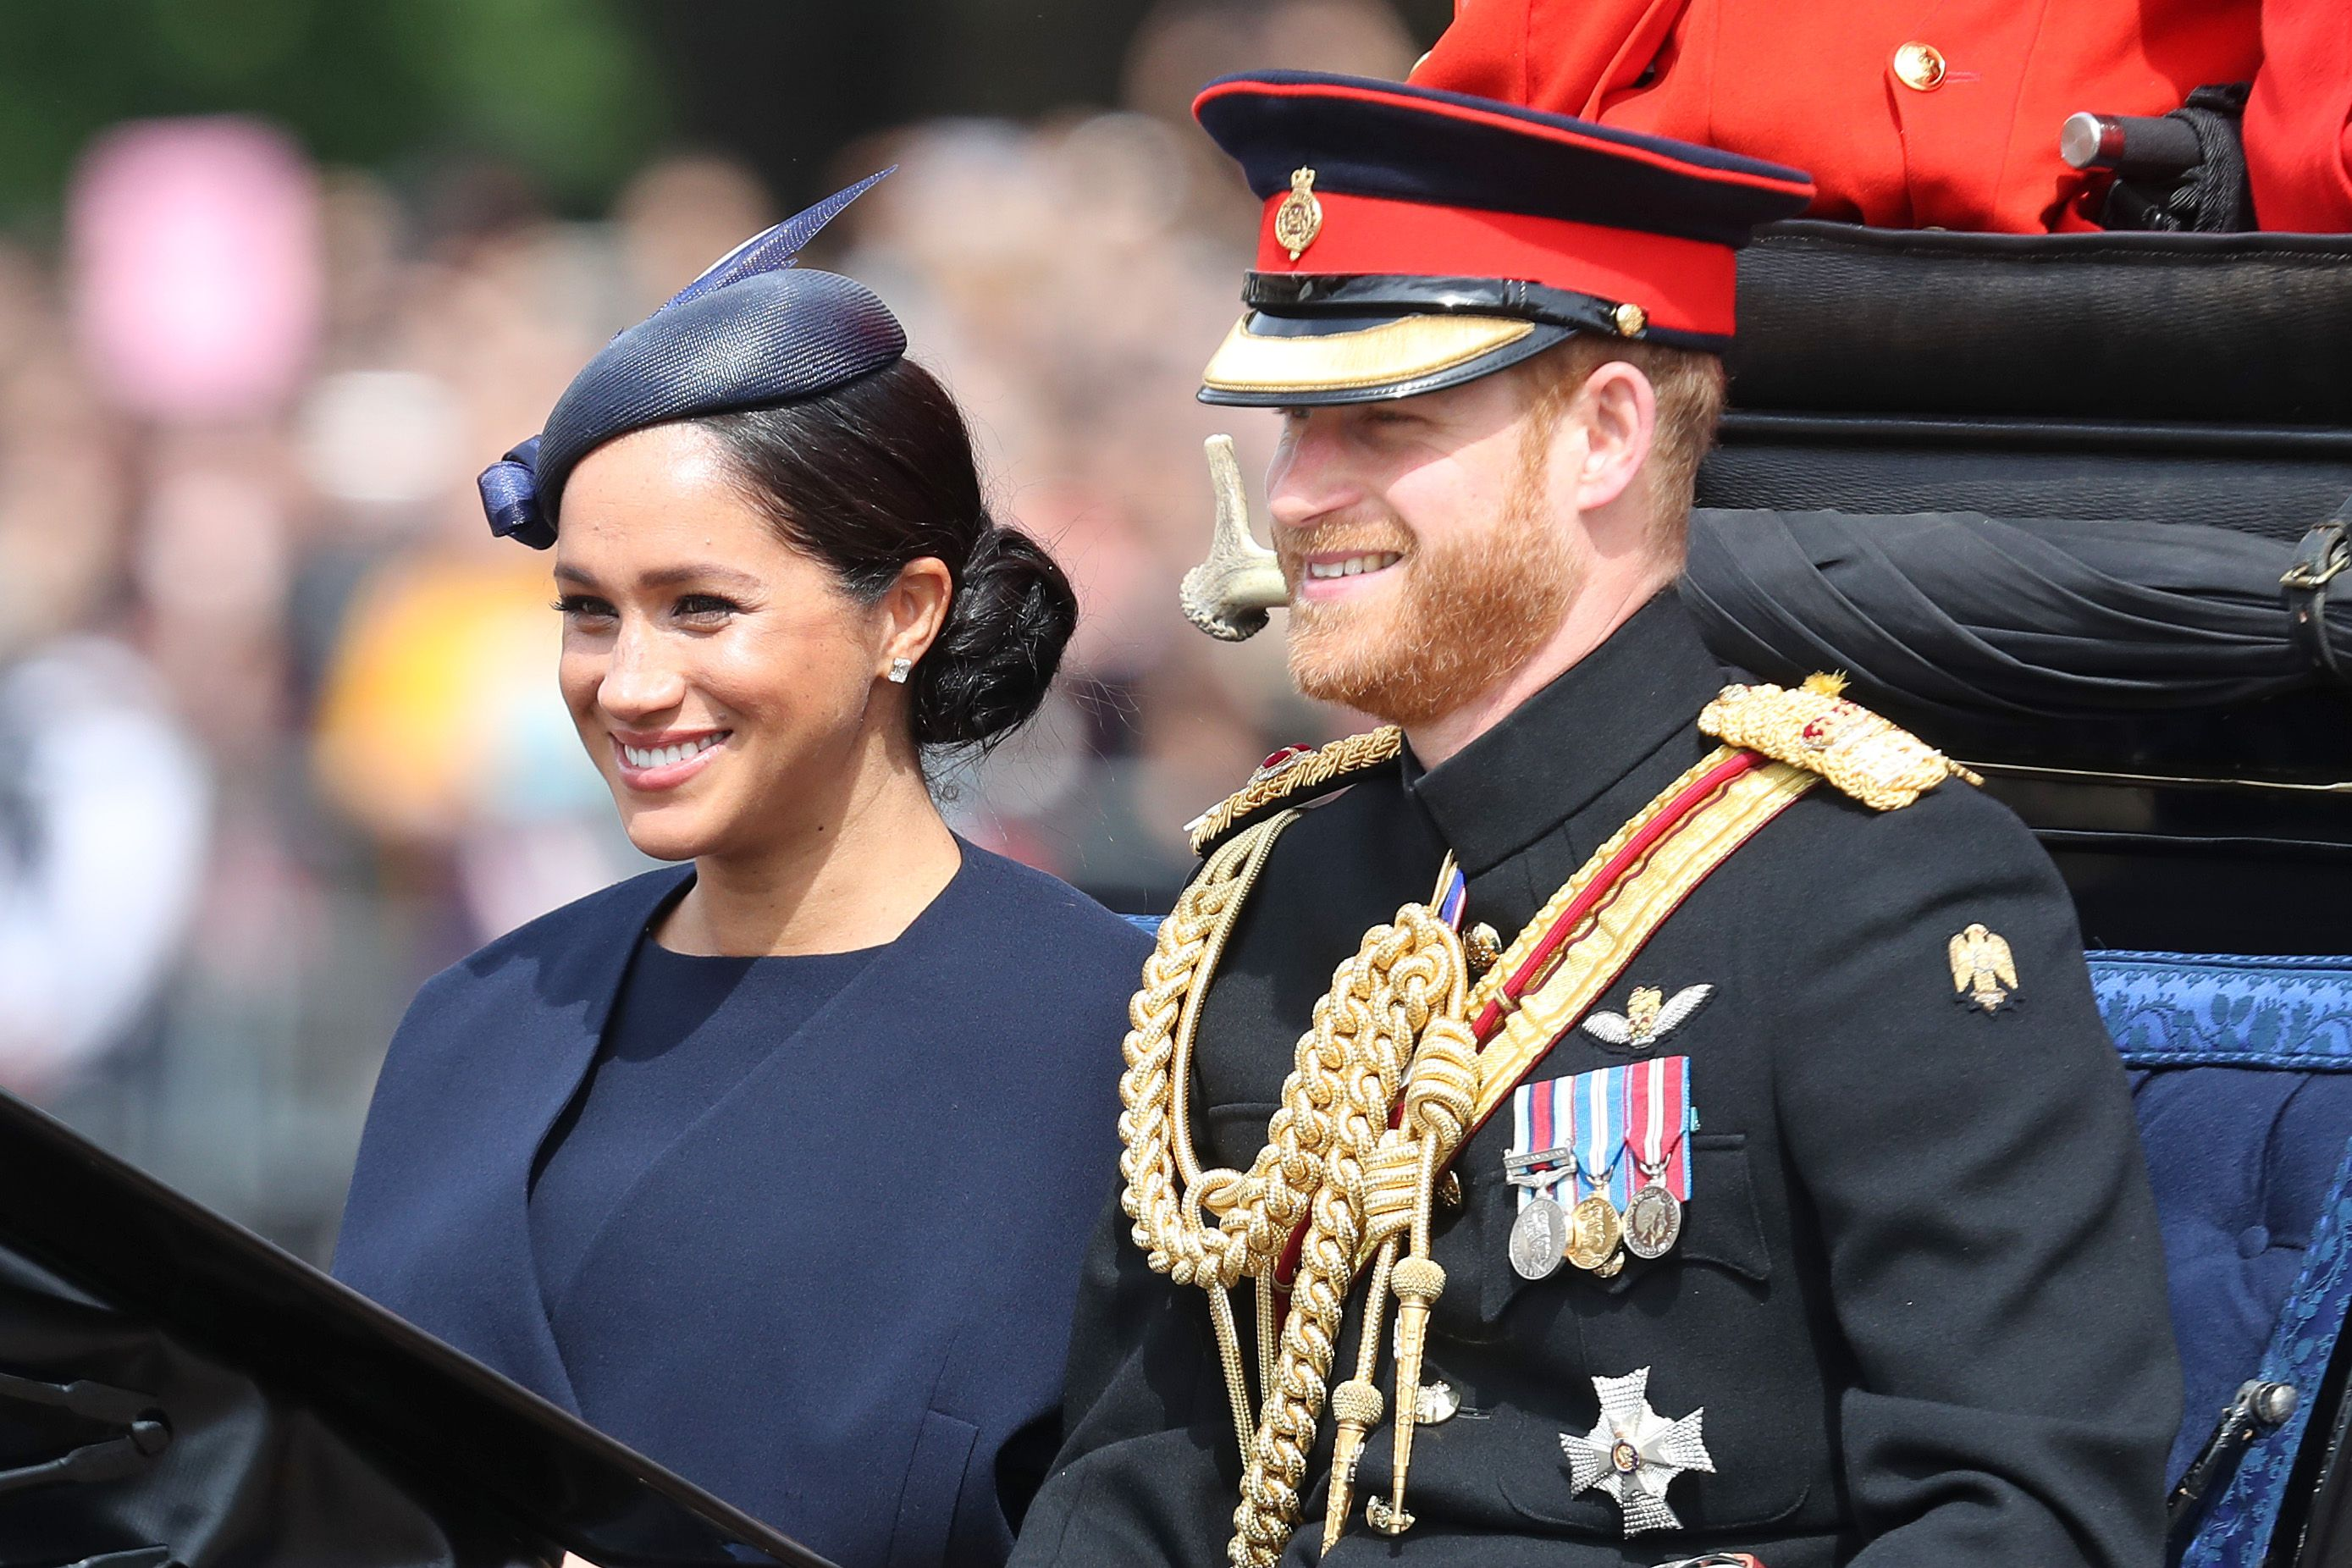 Why Meghan Markle's Royal Baby Archie Didn't Attend Trooping